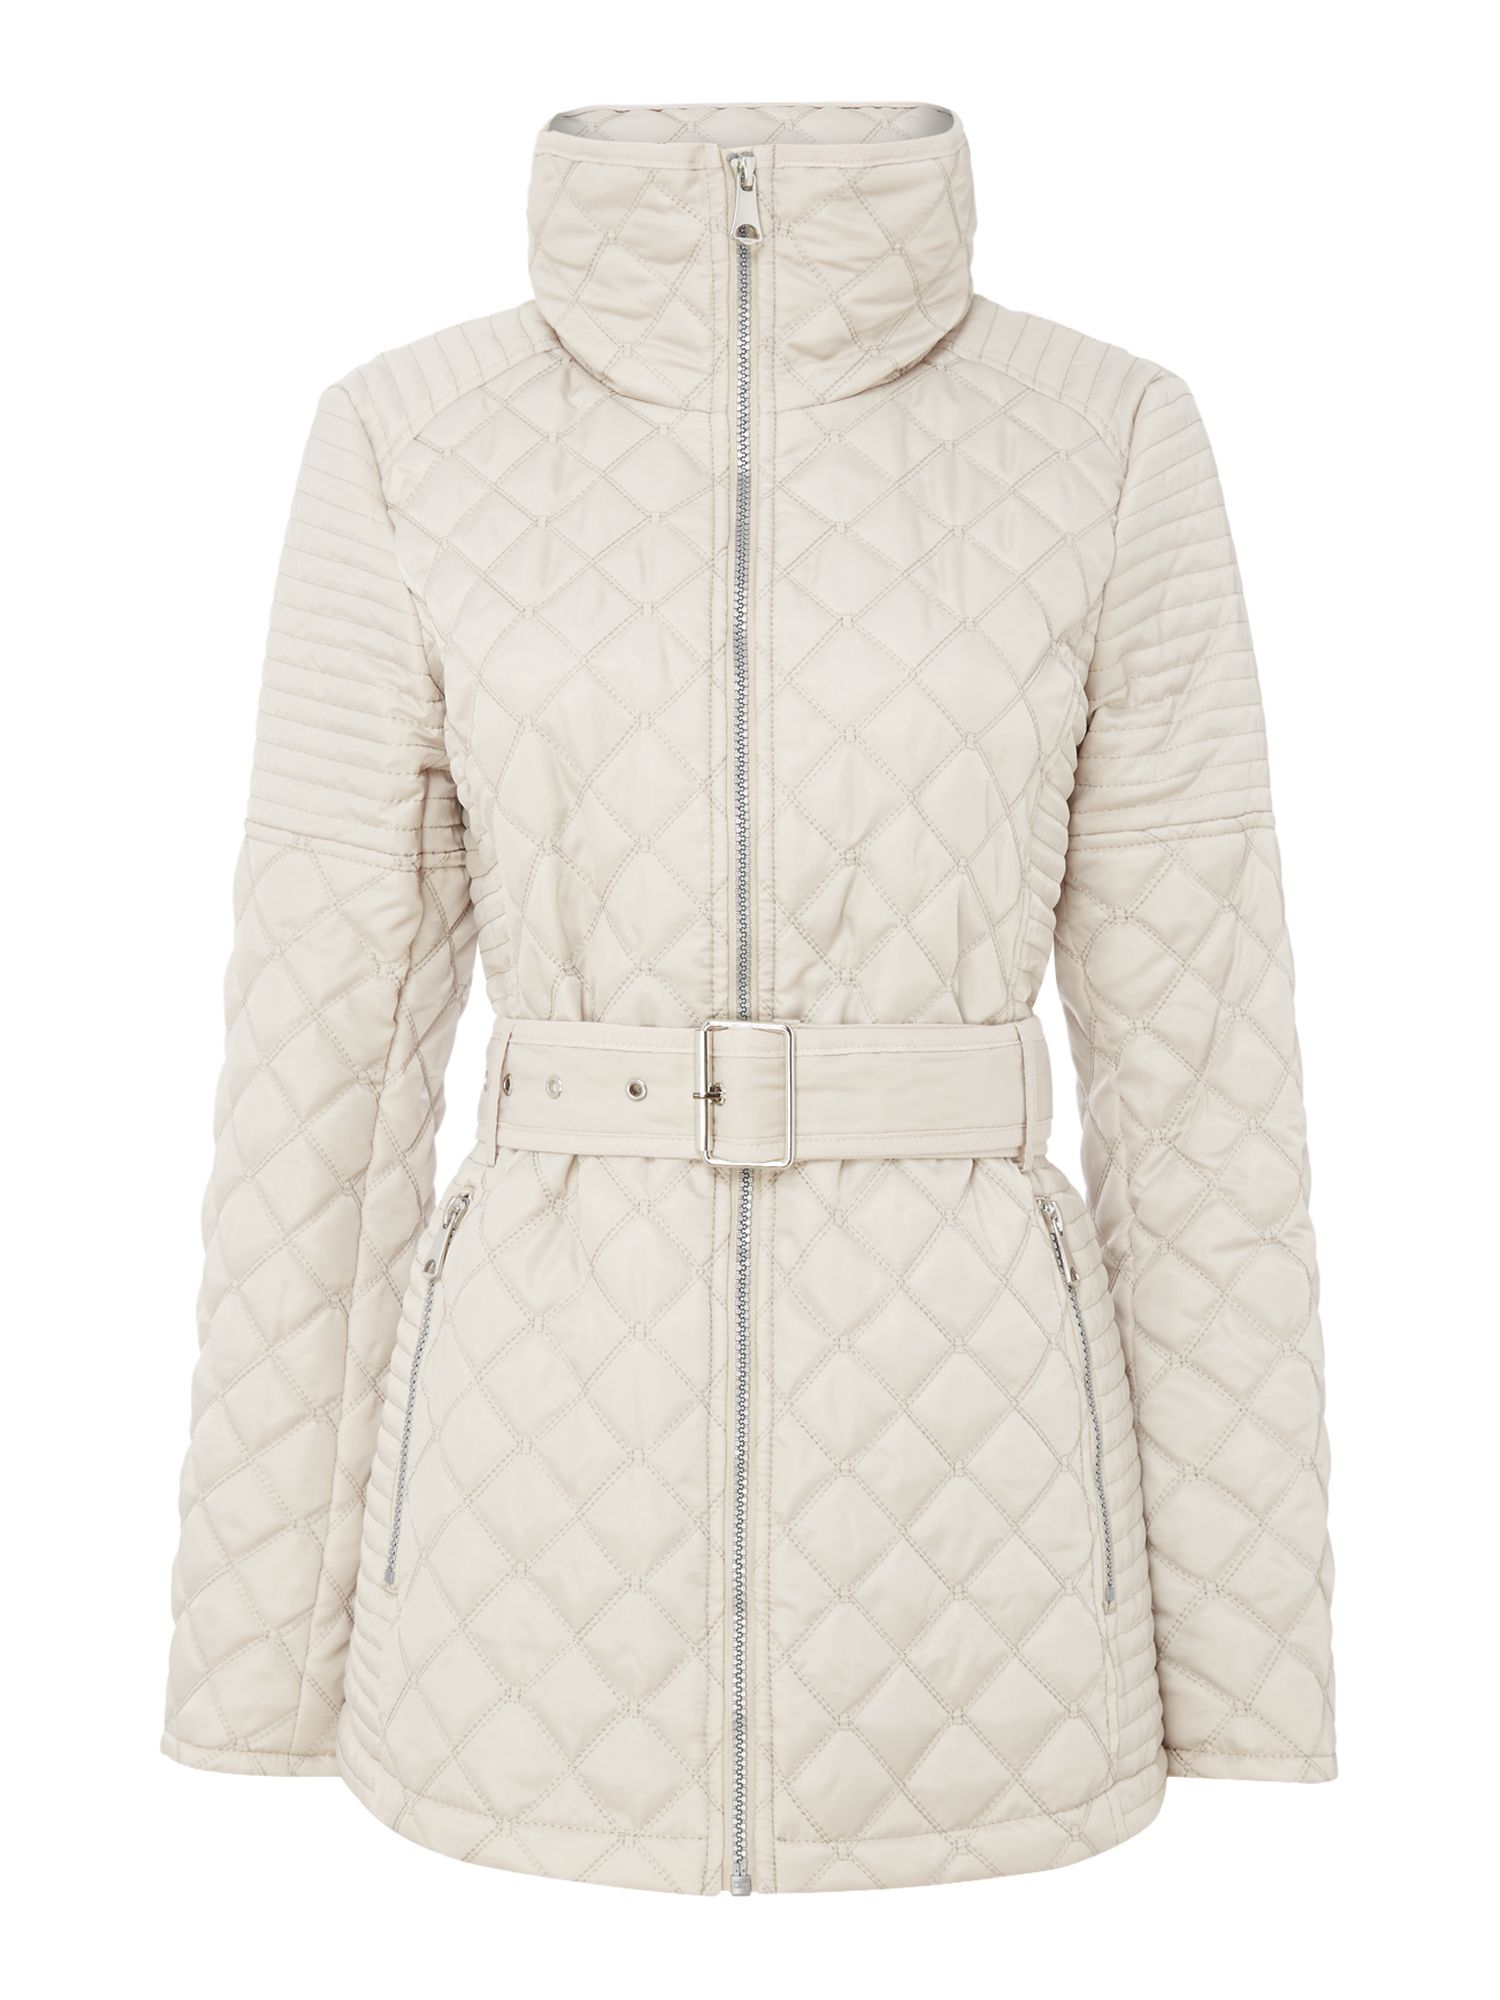 Andrew Marc Quilted jacket with tuck away hood, Grey